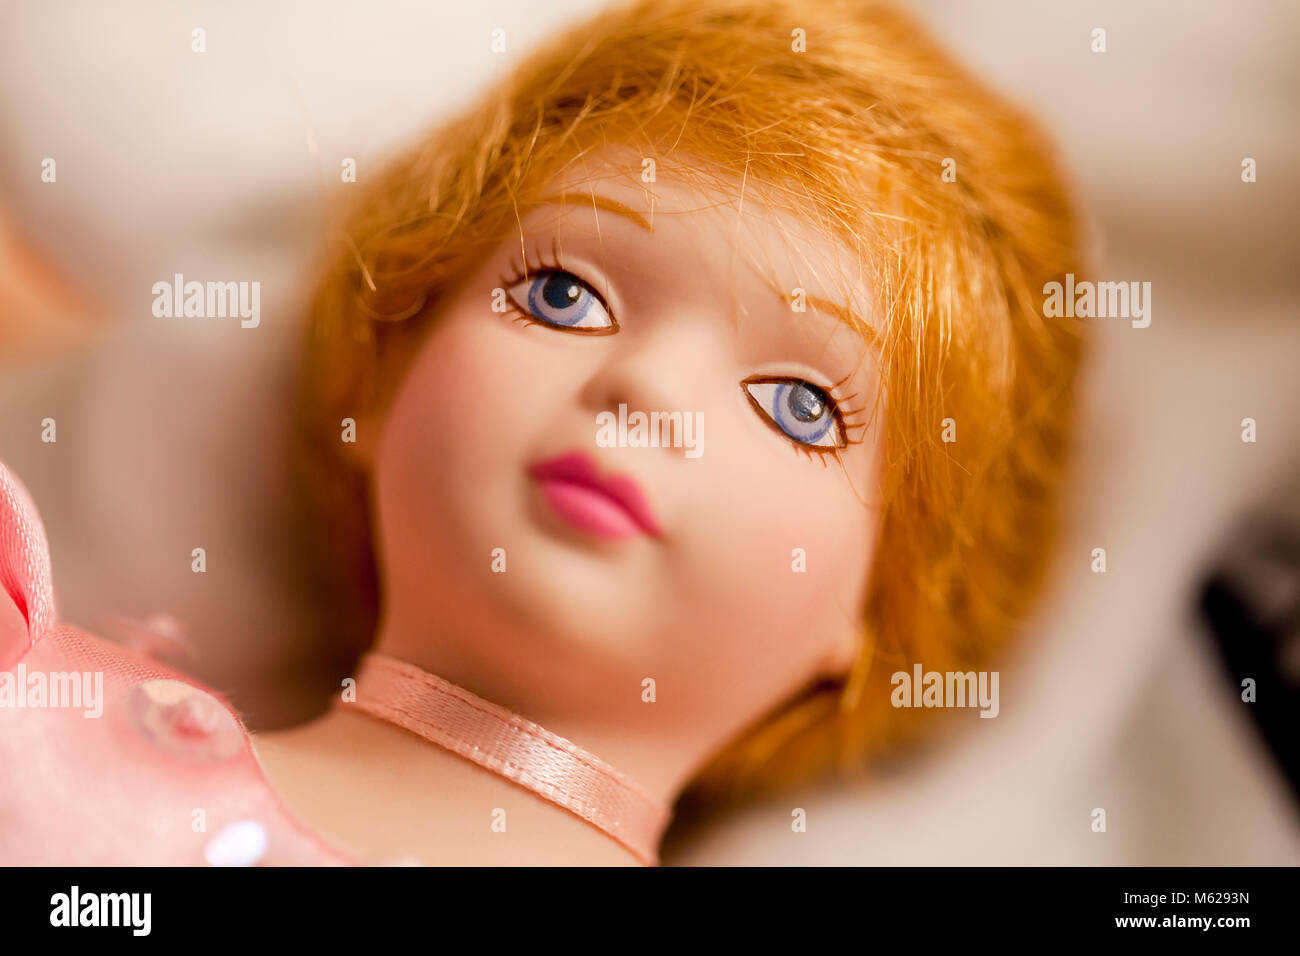 Bisque doll (Porcelain doll) - Stock Image